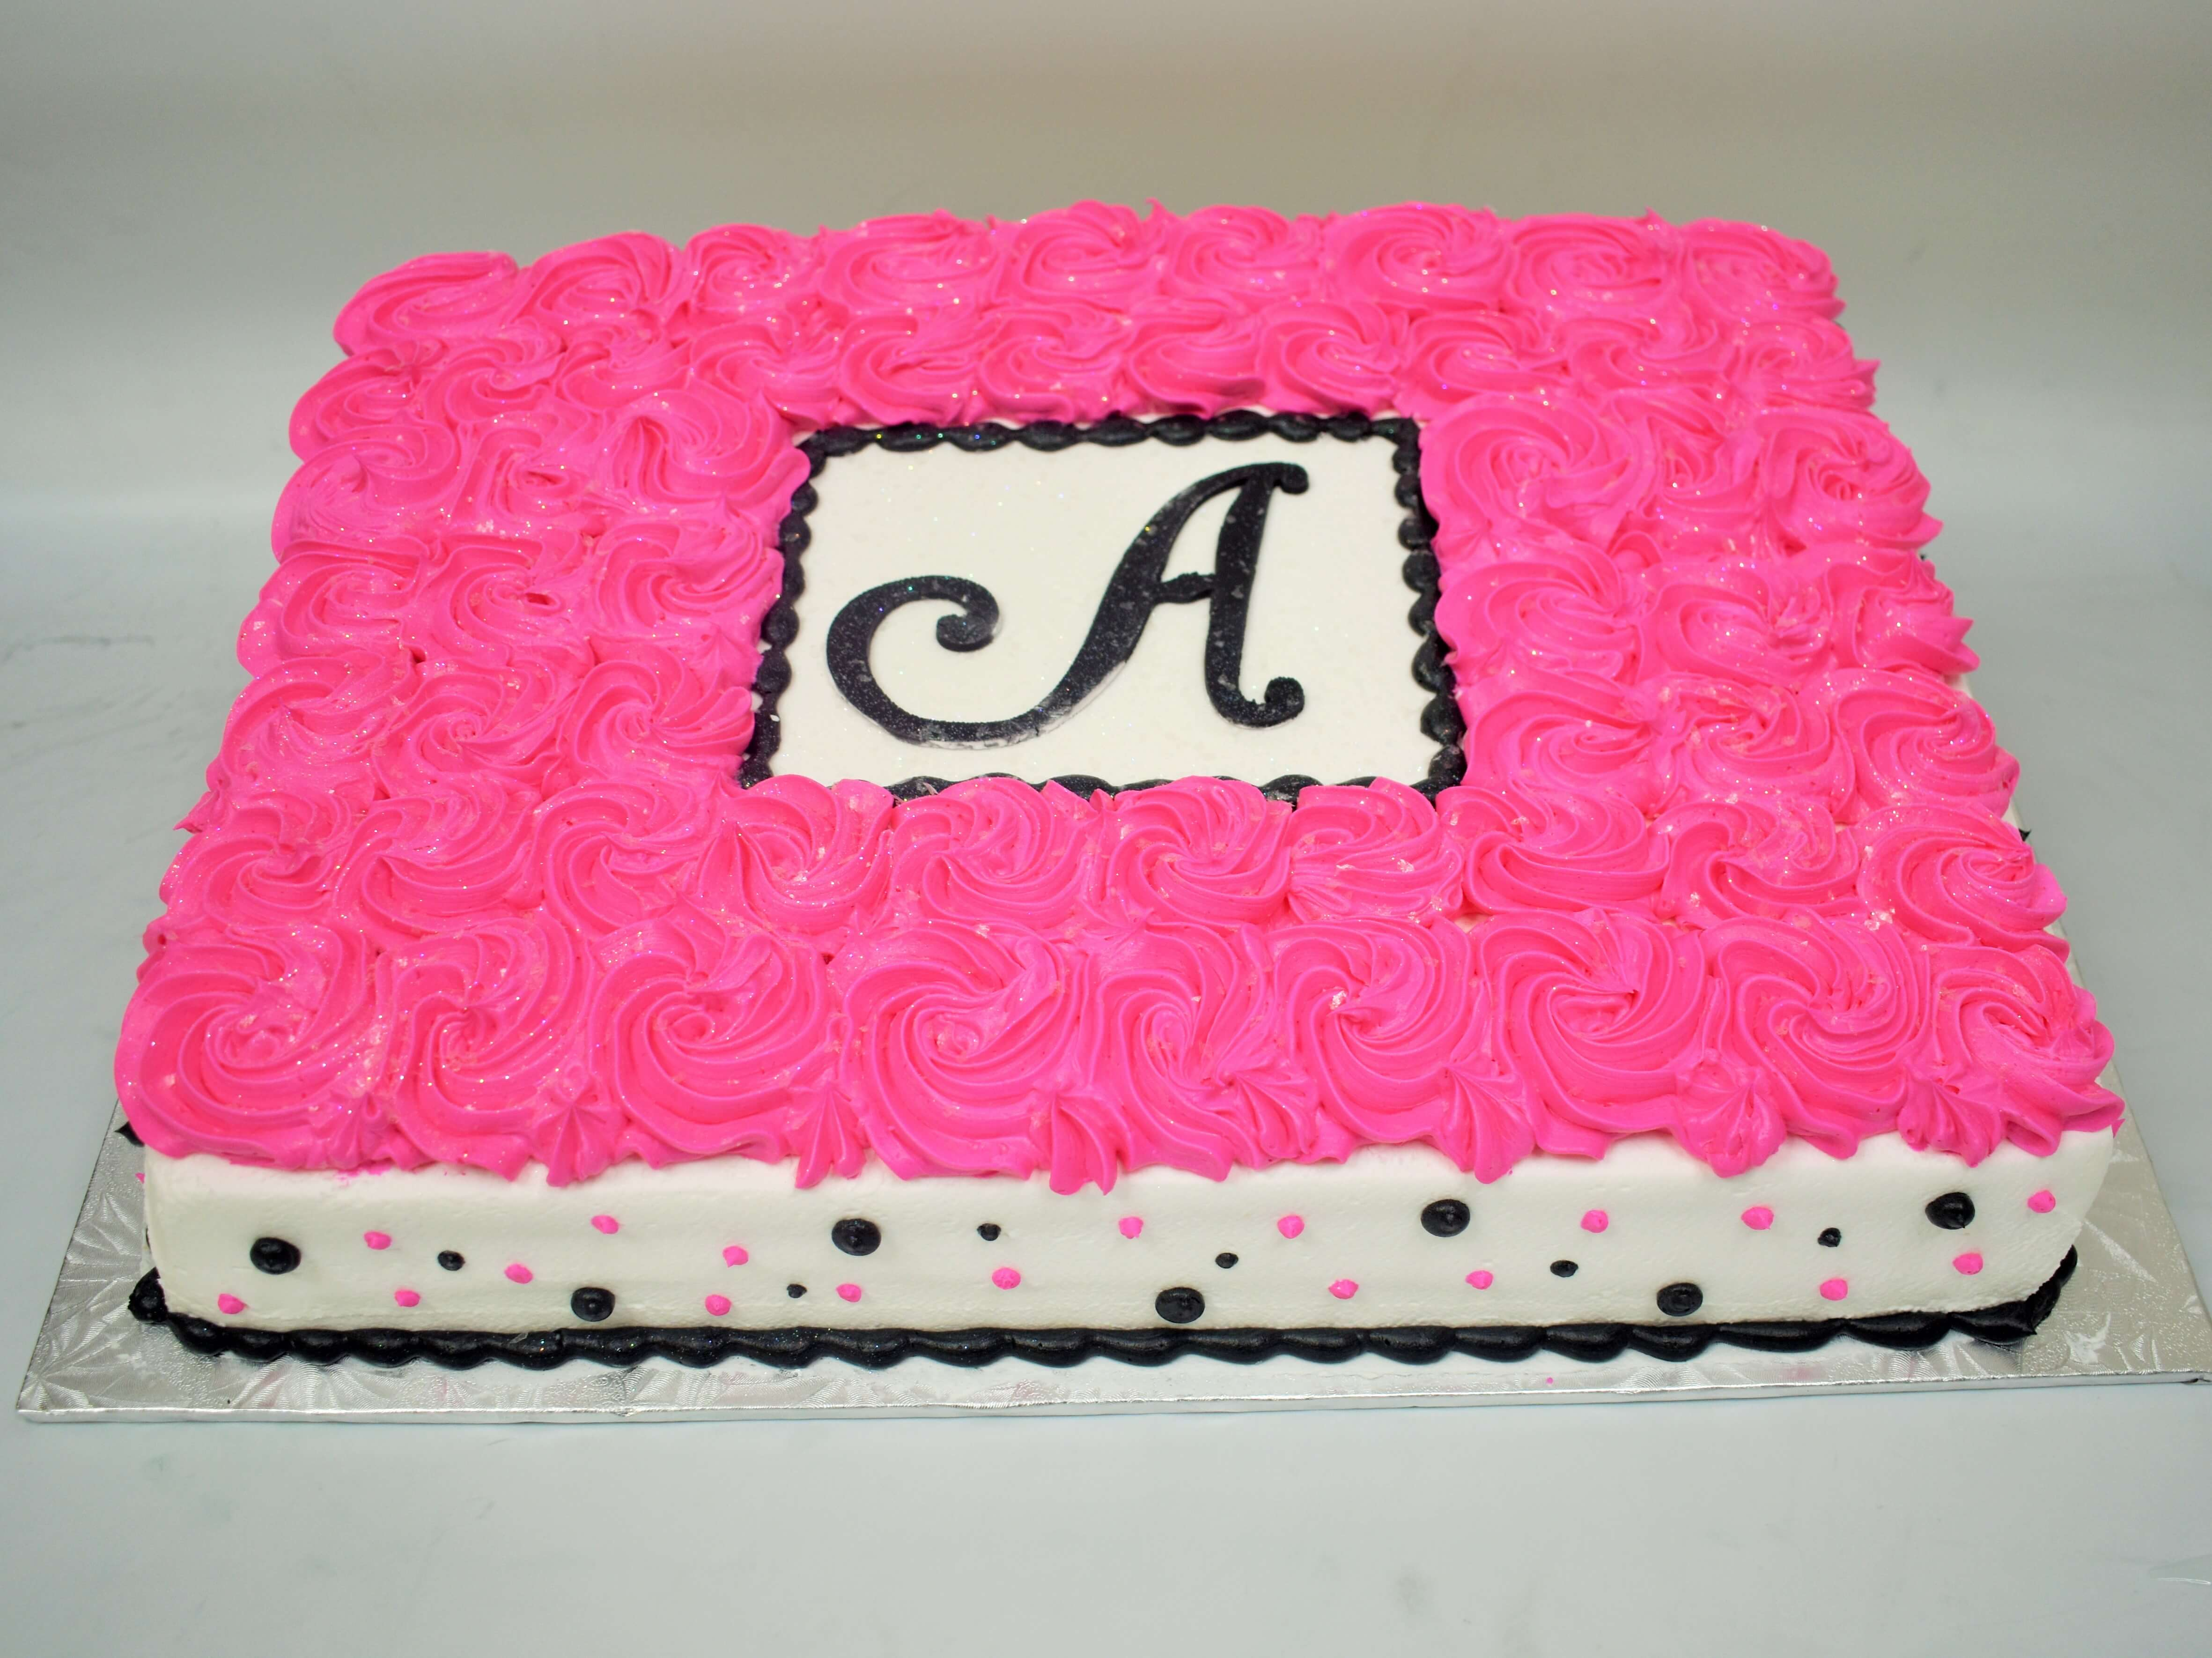 MaArthur's Bakery Custom Cake Pink Rosettes, Pink and Black Polka Dots